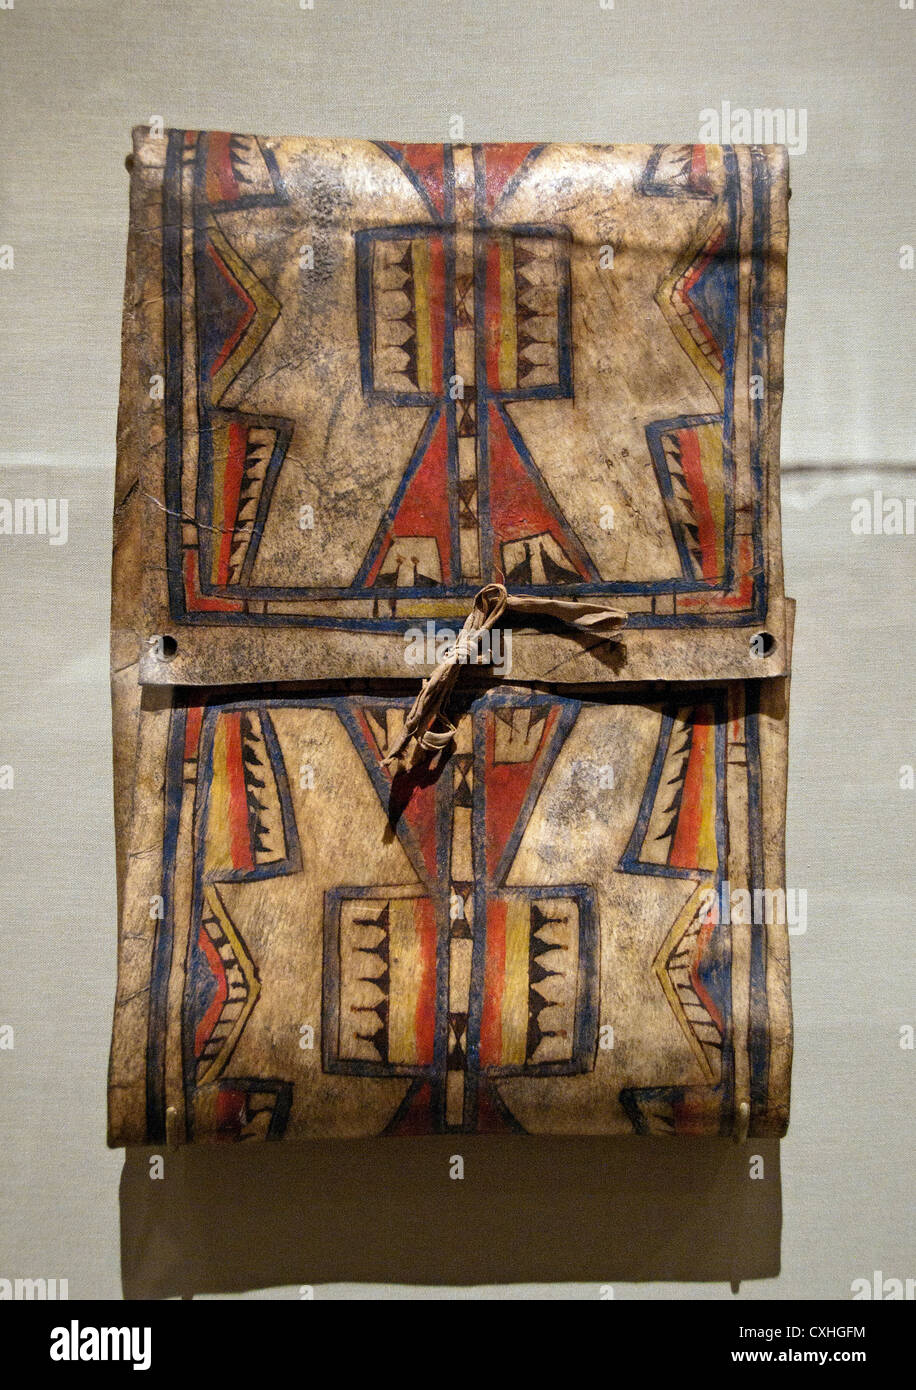 Parfleche ca. 1875 Geography United States of America Oklahoma Cheyenne Rawhide pigment Native tanned skin ties - Stock Image